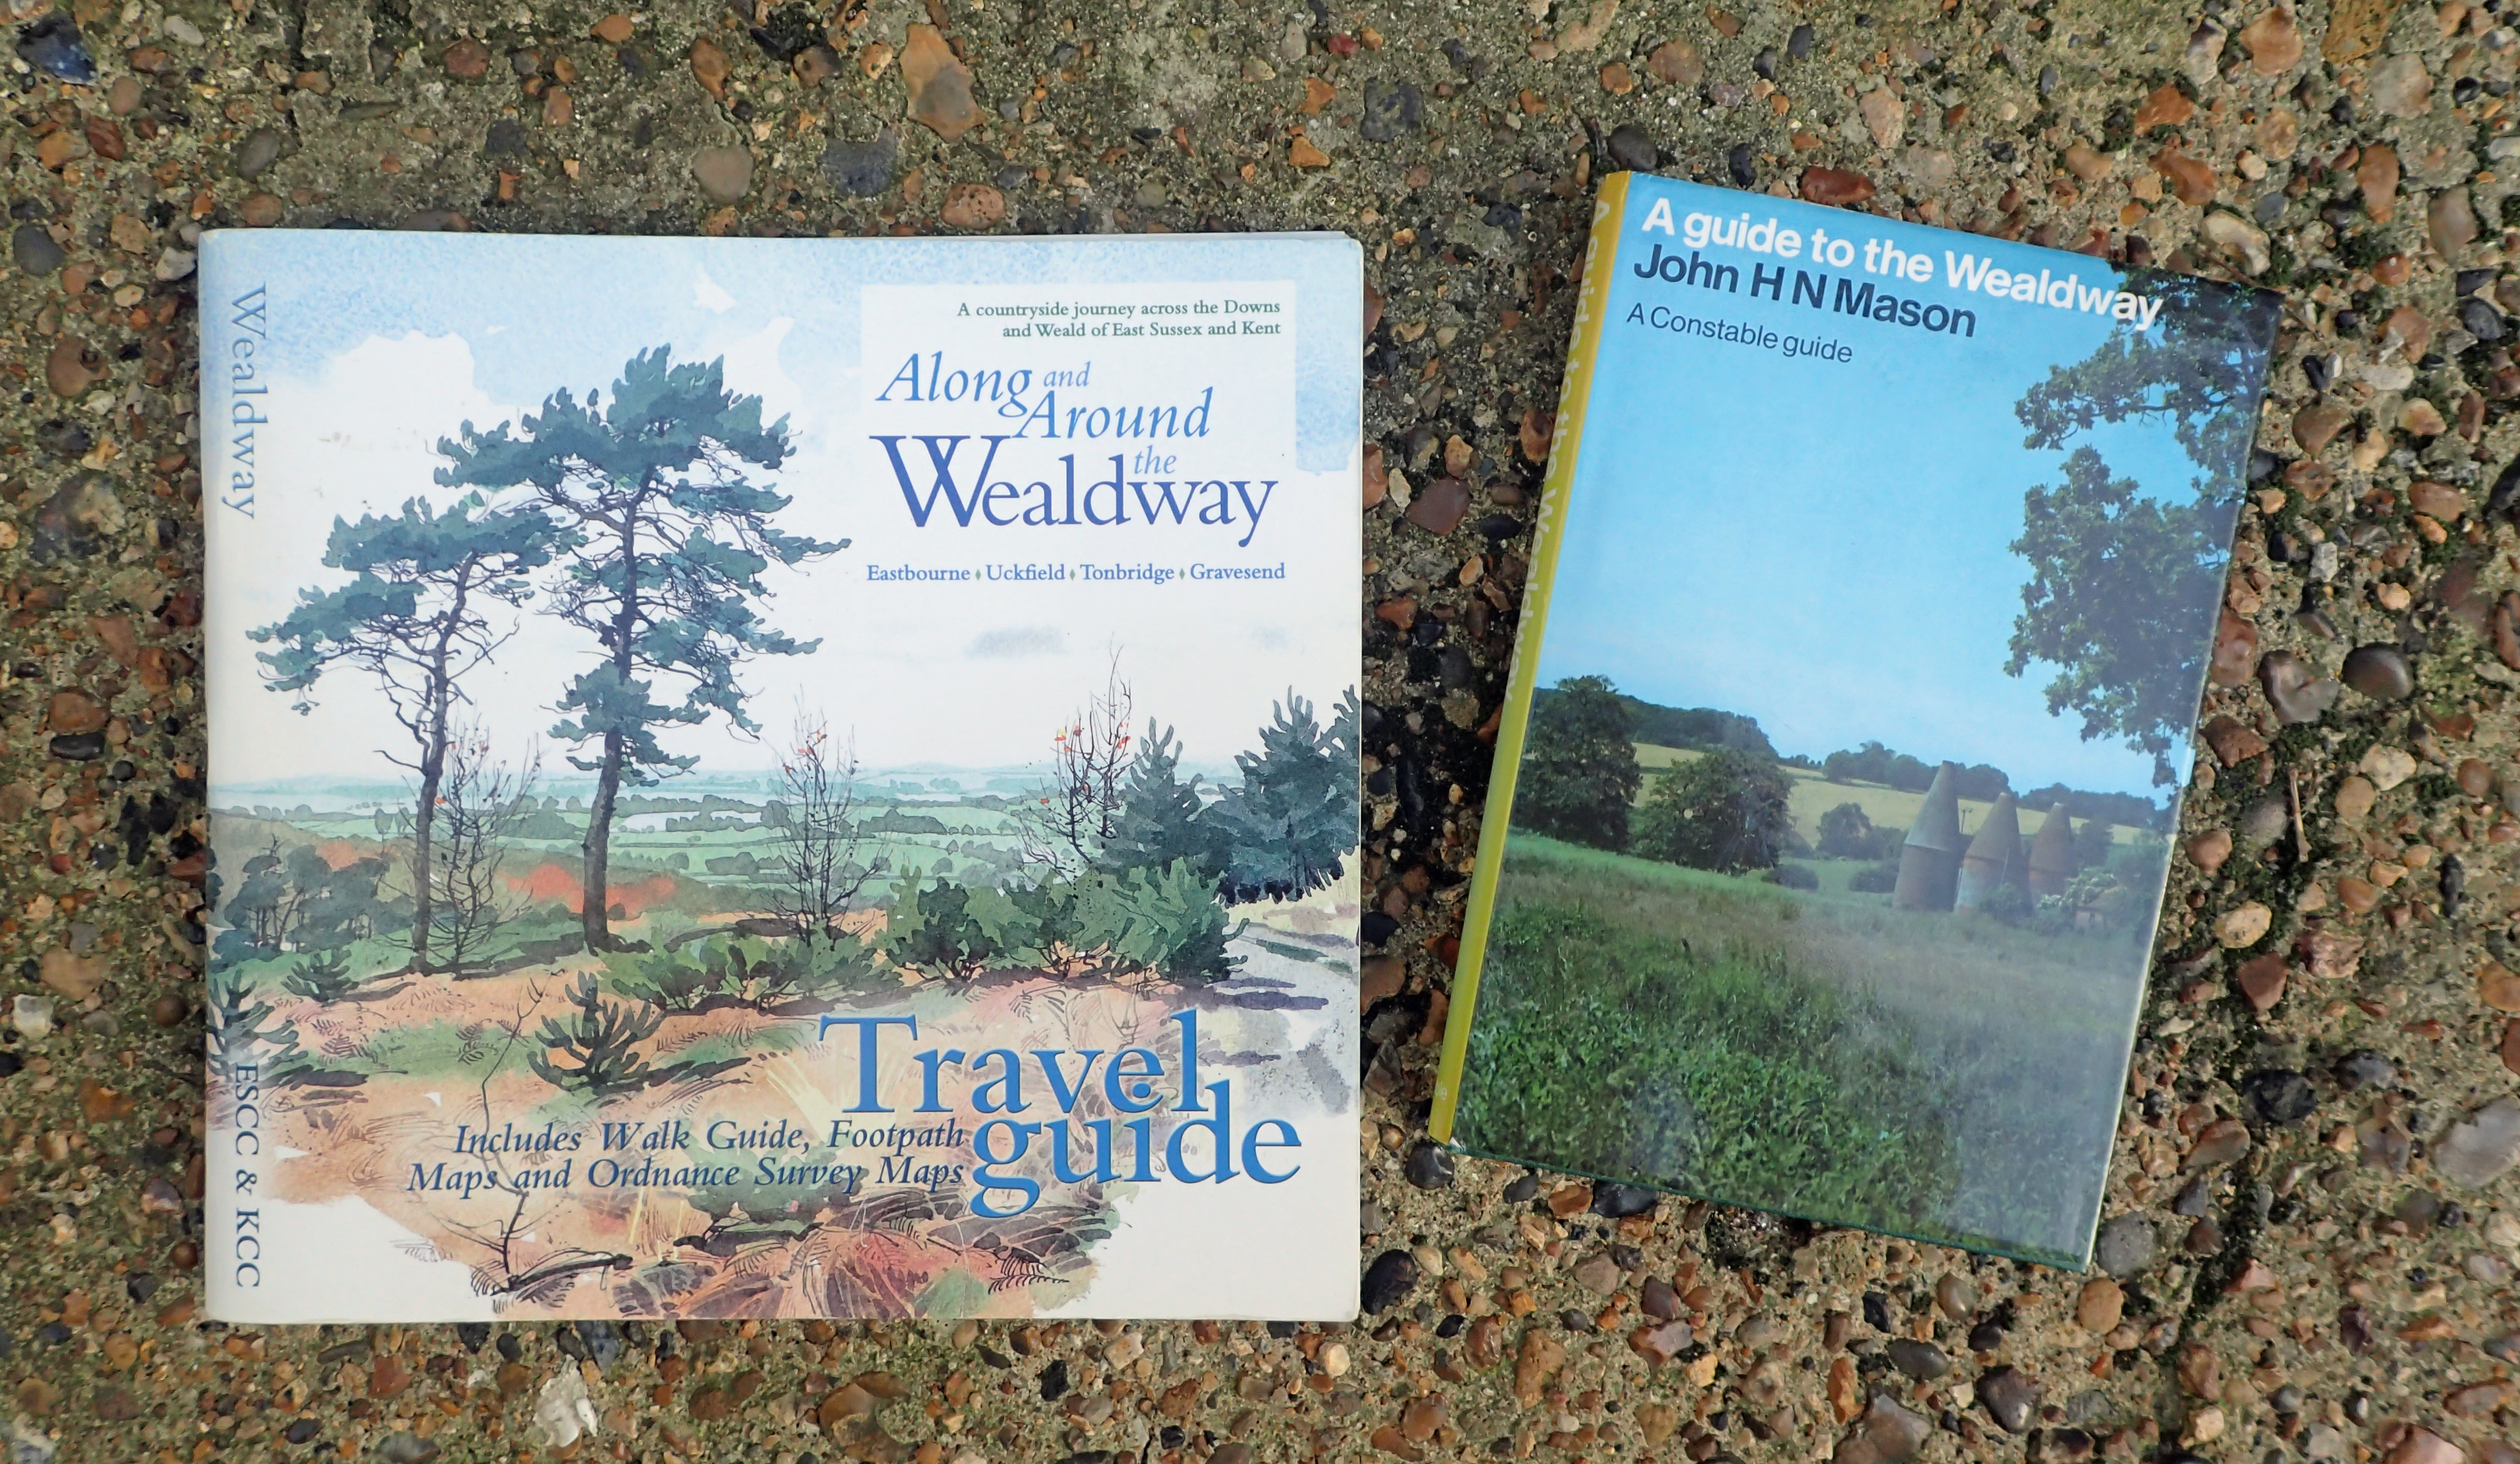 There are only two guides of any note that cover the Wealdway, both are now pretty old and out of date in aprts. However they both provide a wealth of background information on the sites to be seen, the geography and history of the diverse route are well covered